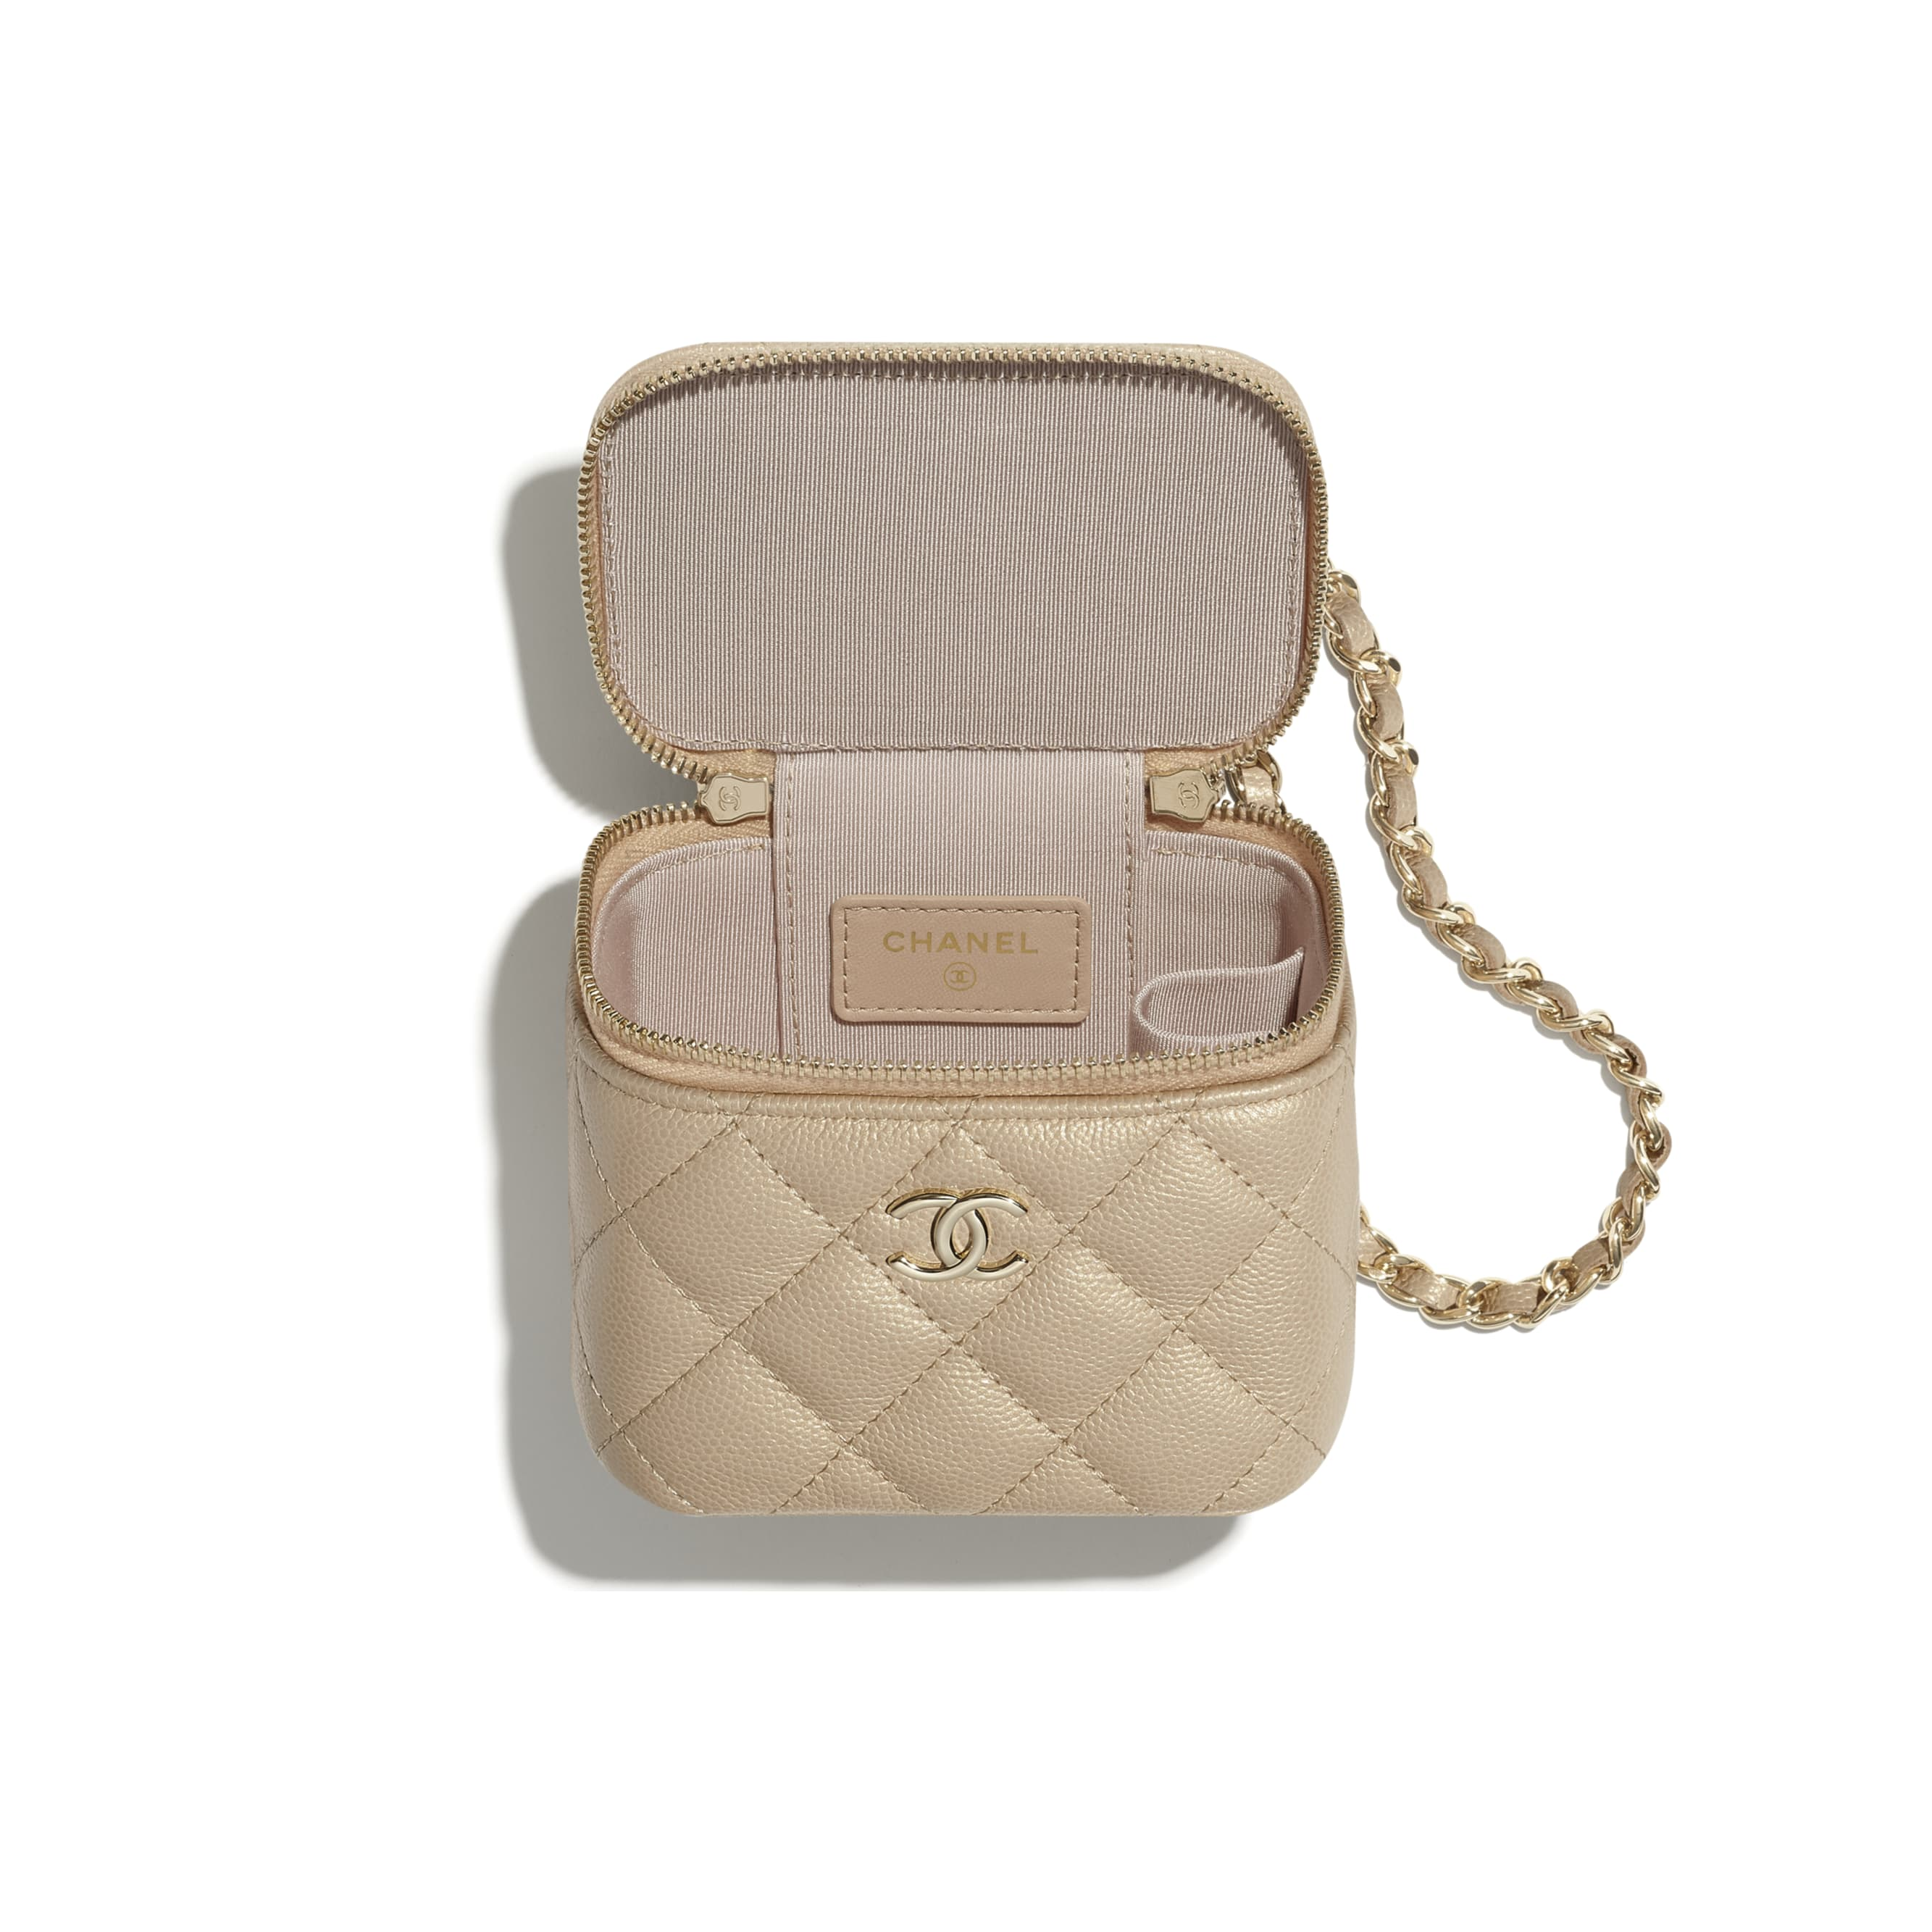 Small Vanity with Chain - Beige - Iridescent Grained Calfskin, Imitation Pearls & Gold-Tone Metal - CHANEL - Alternative view - see standard sized version